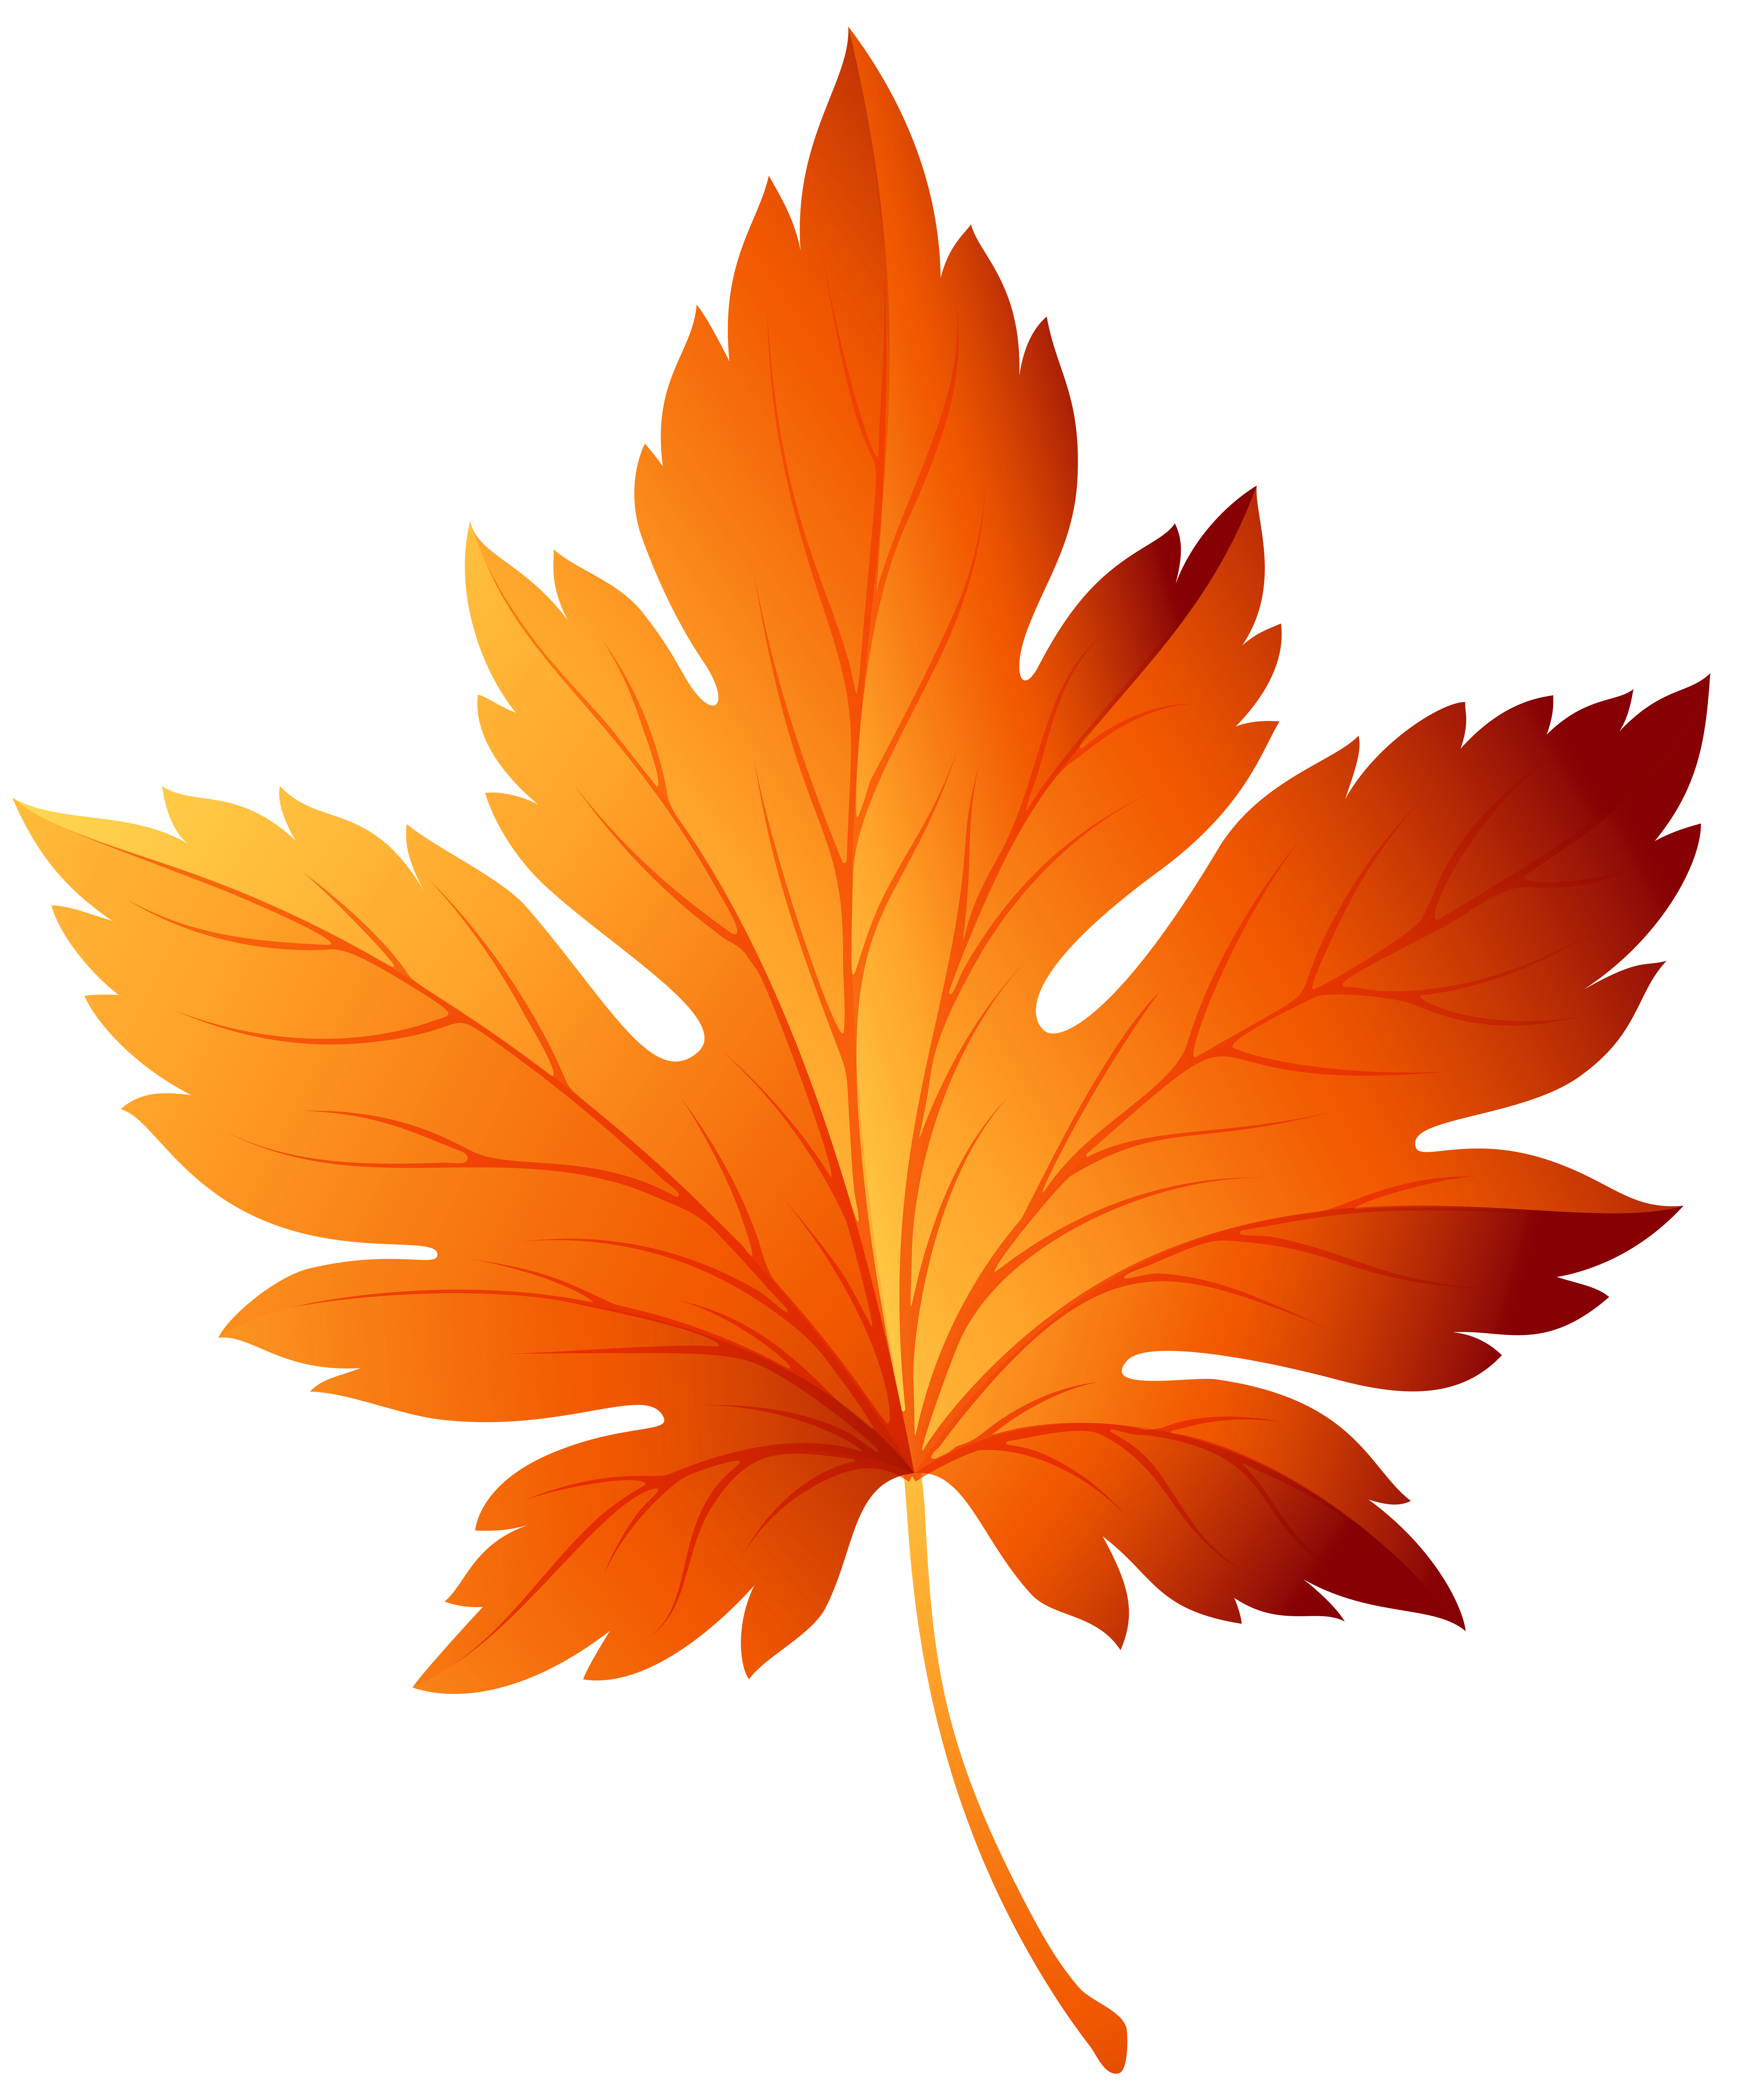 Leaf clipart color image royalty free library Autumn leaf color Clip art - autumn leaves png download - 5839*7000 ... image royalty free library